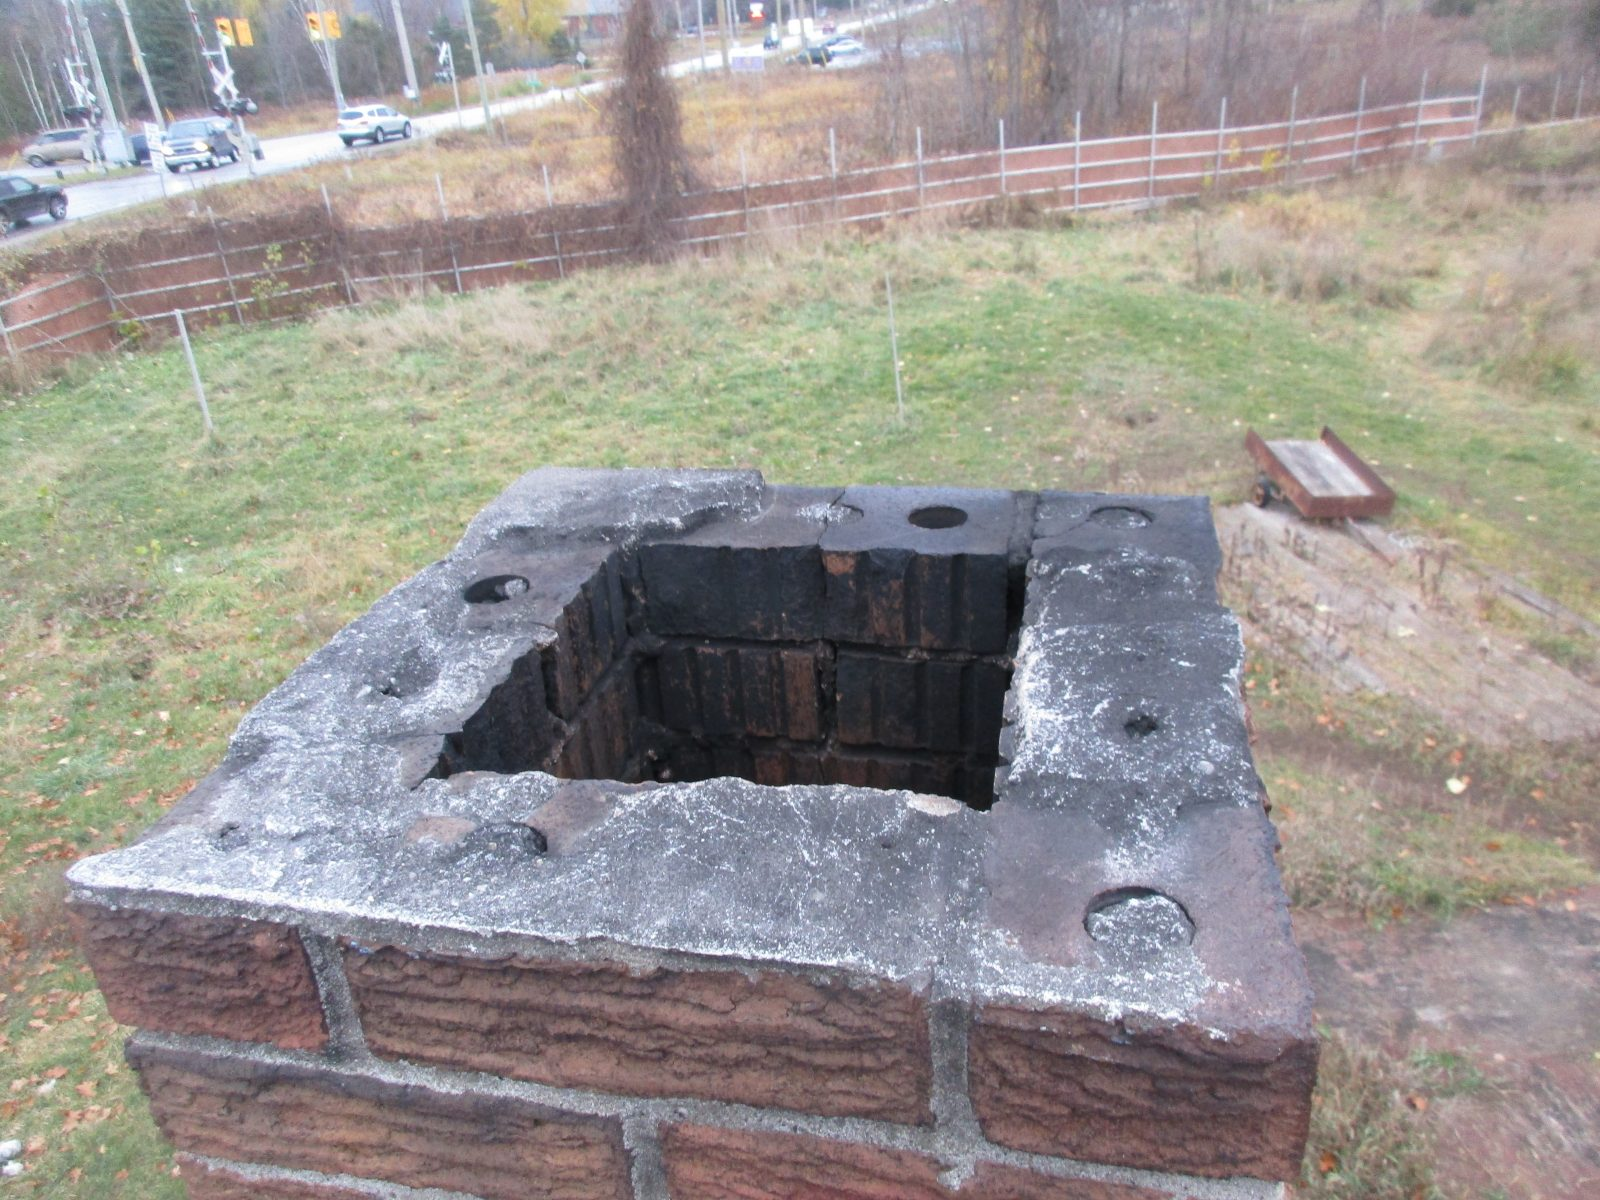 Chimney has no liner and is not useable.